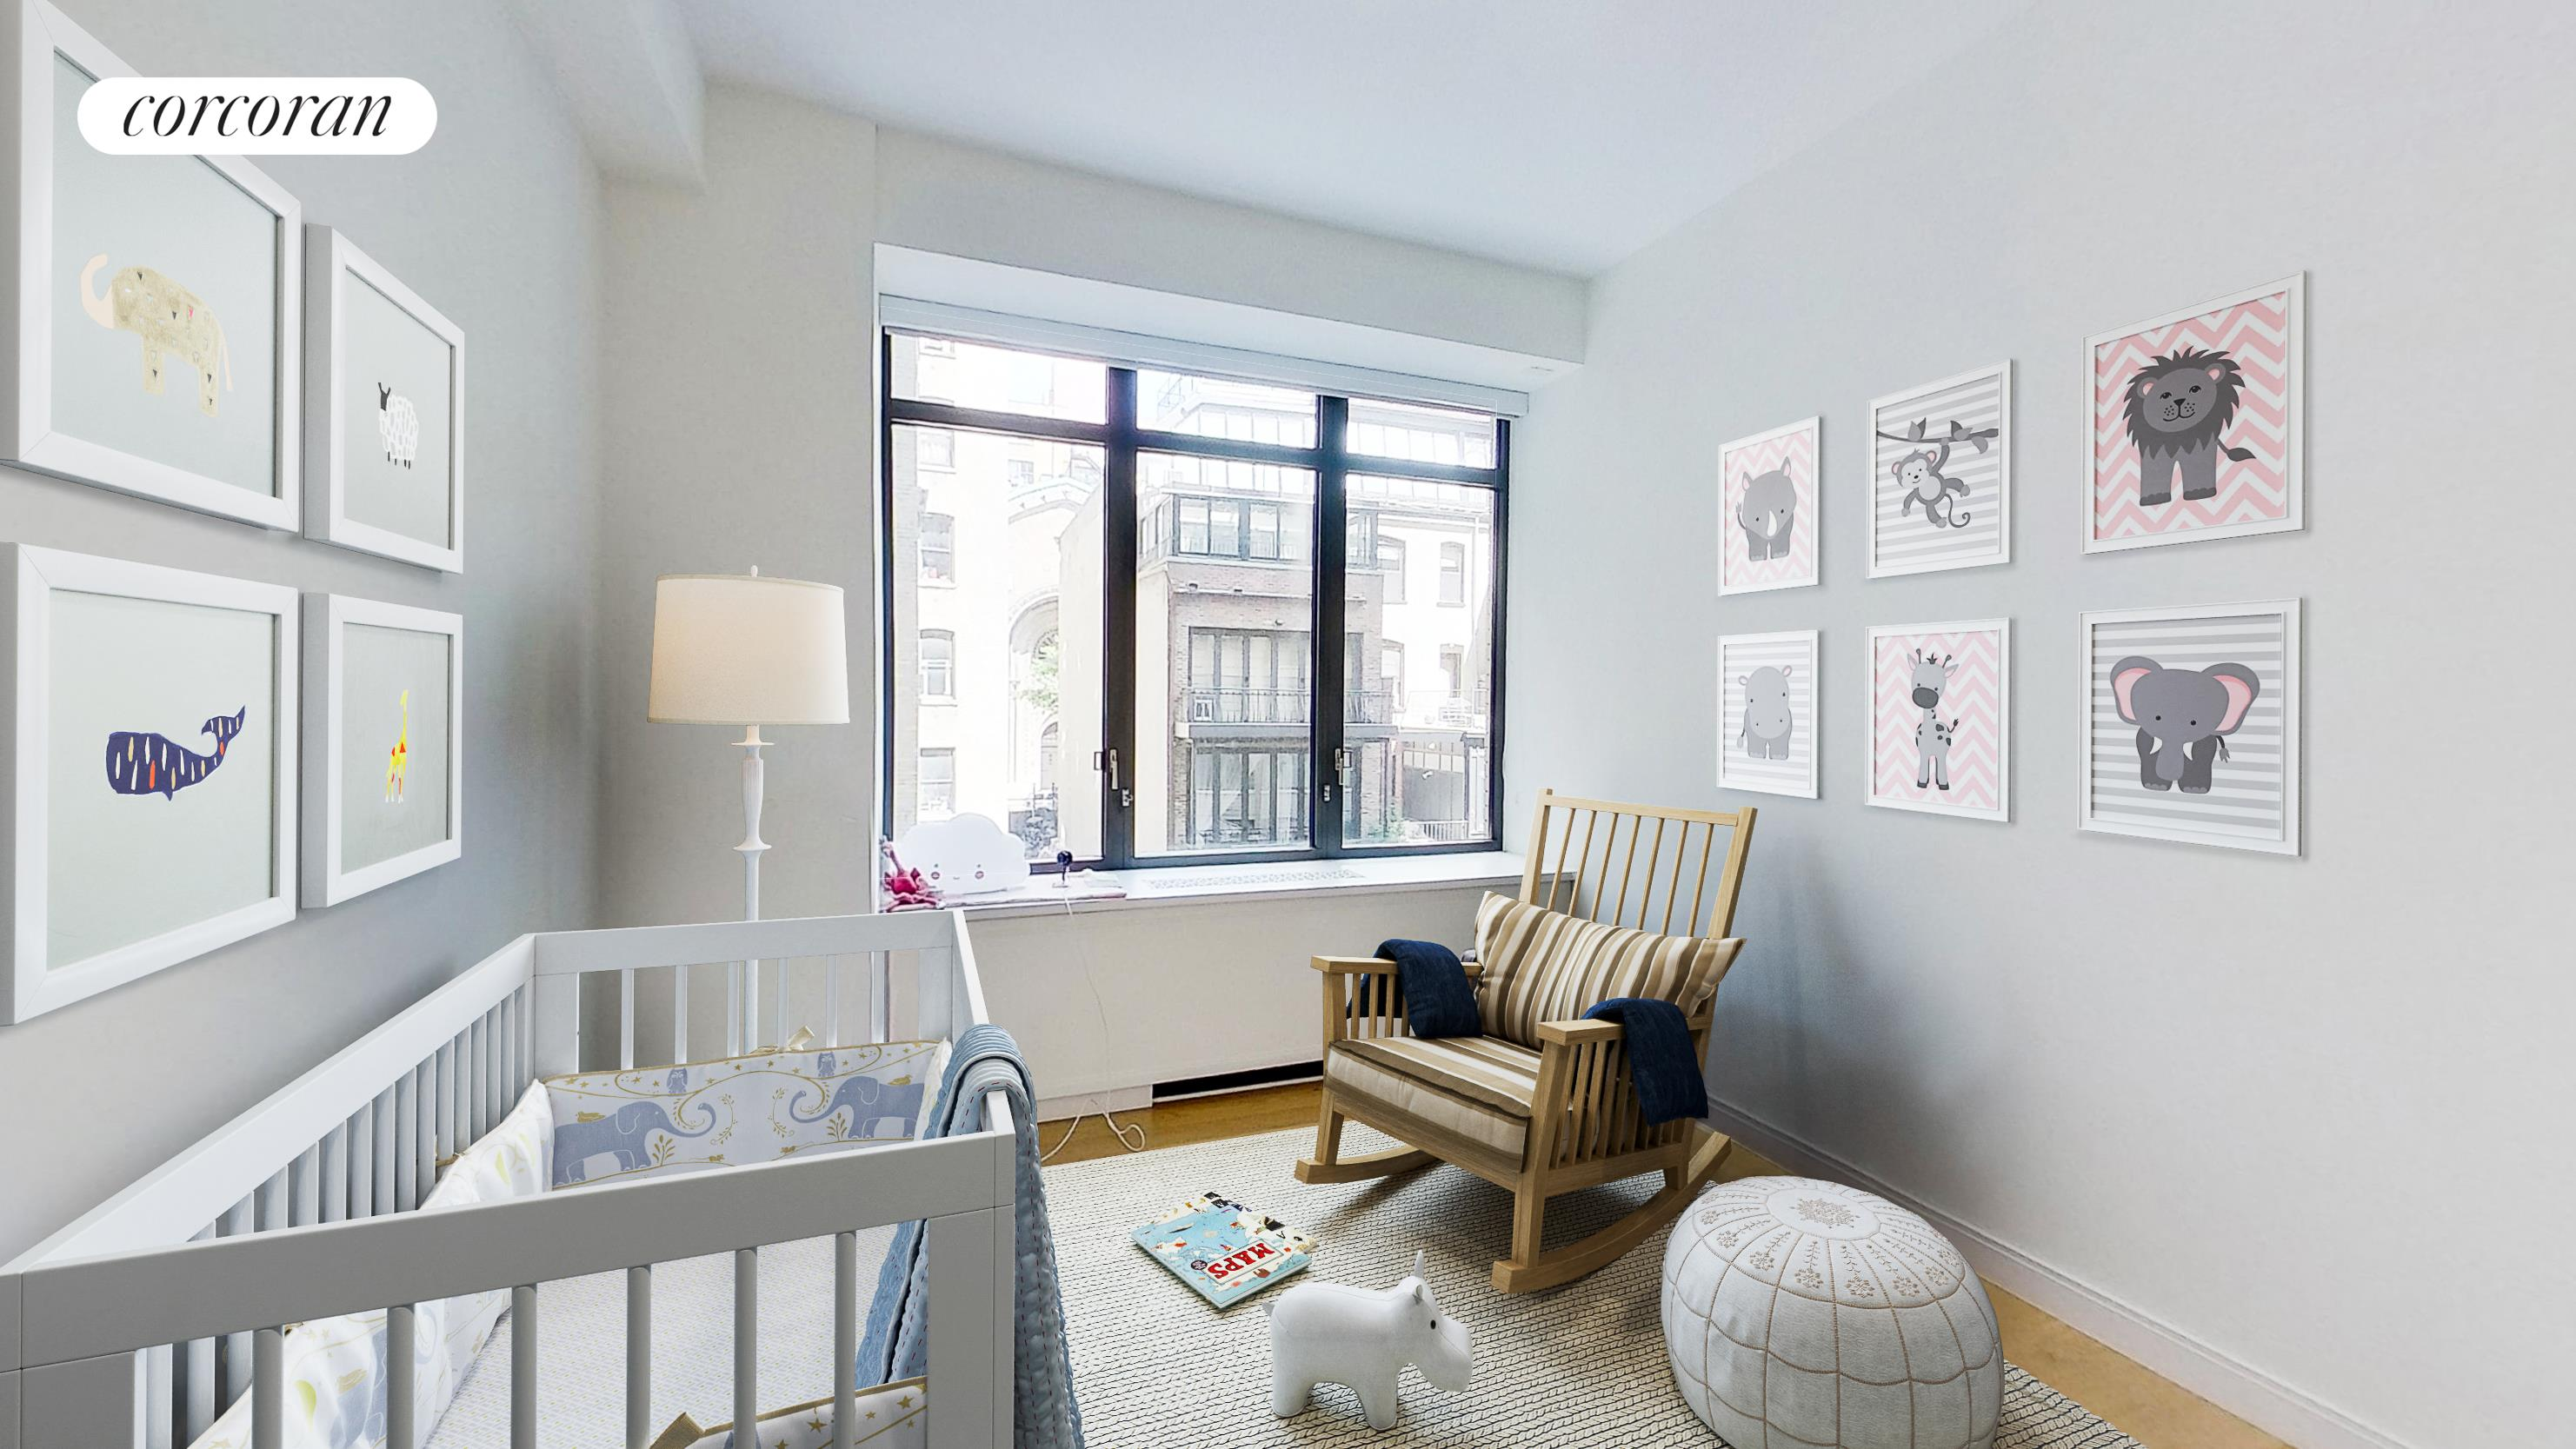 Apartment for sale at 269 West 87th Street, Apt 3A